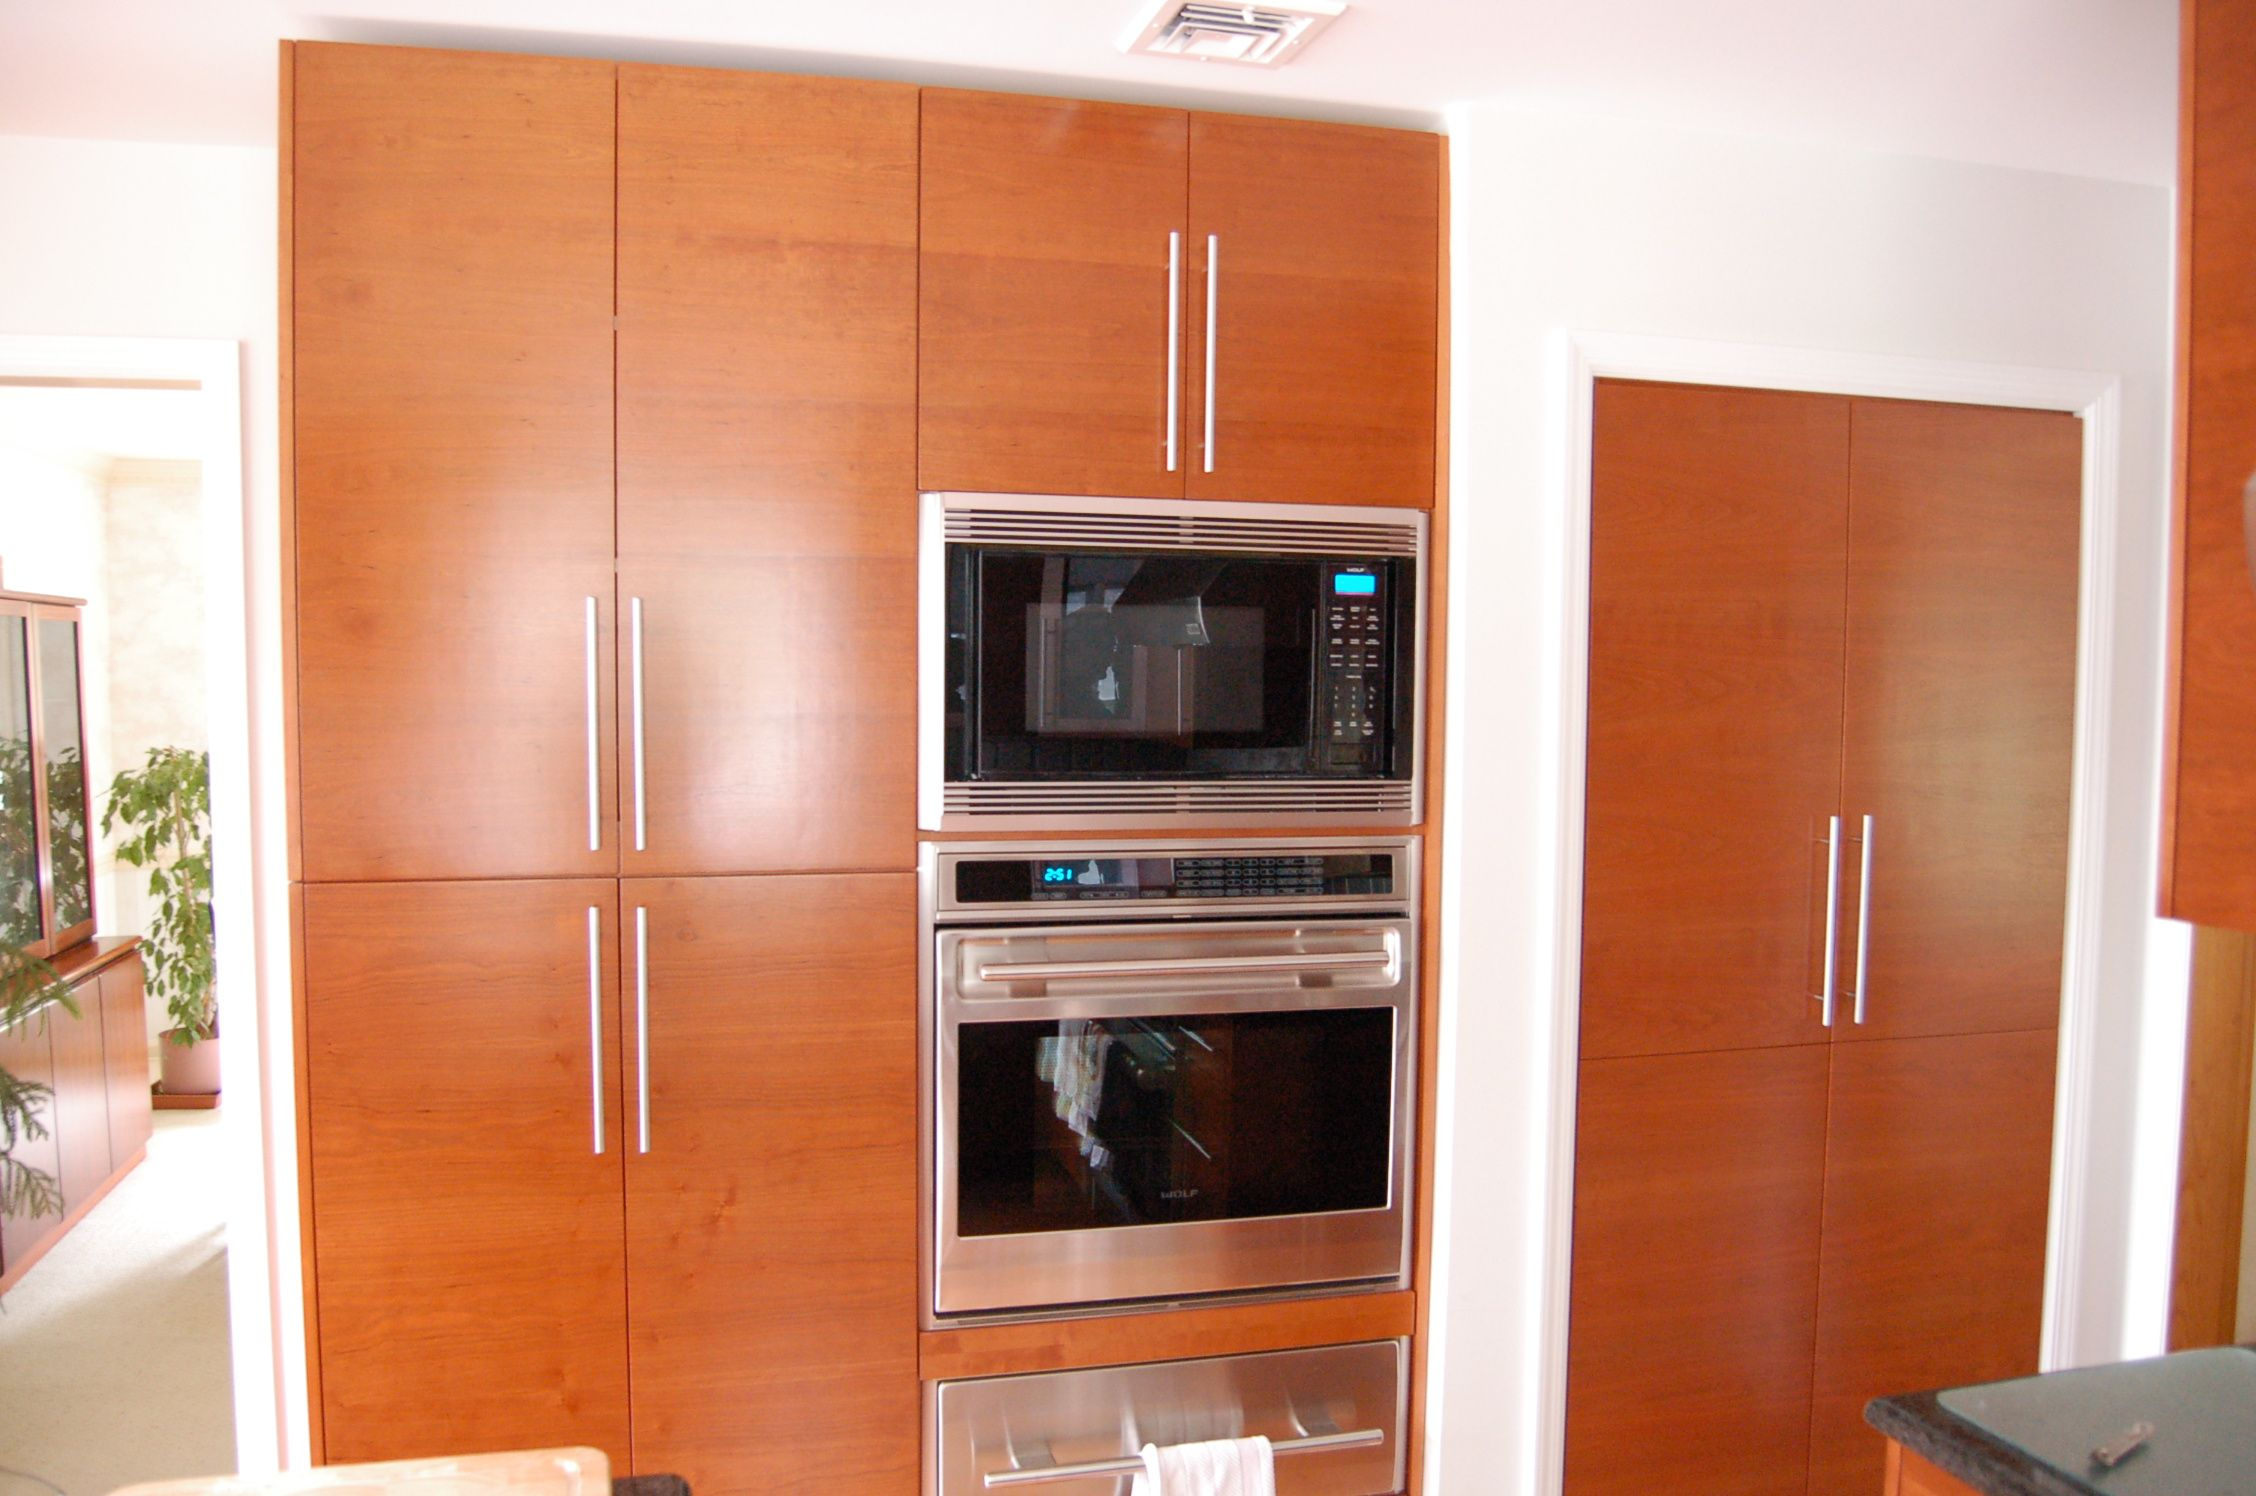 CONTEMPORARY BUILT IN KITCHEN- made the existing pantry closet doors match the rest of kitchen for a sleek look.